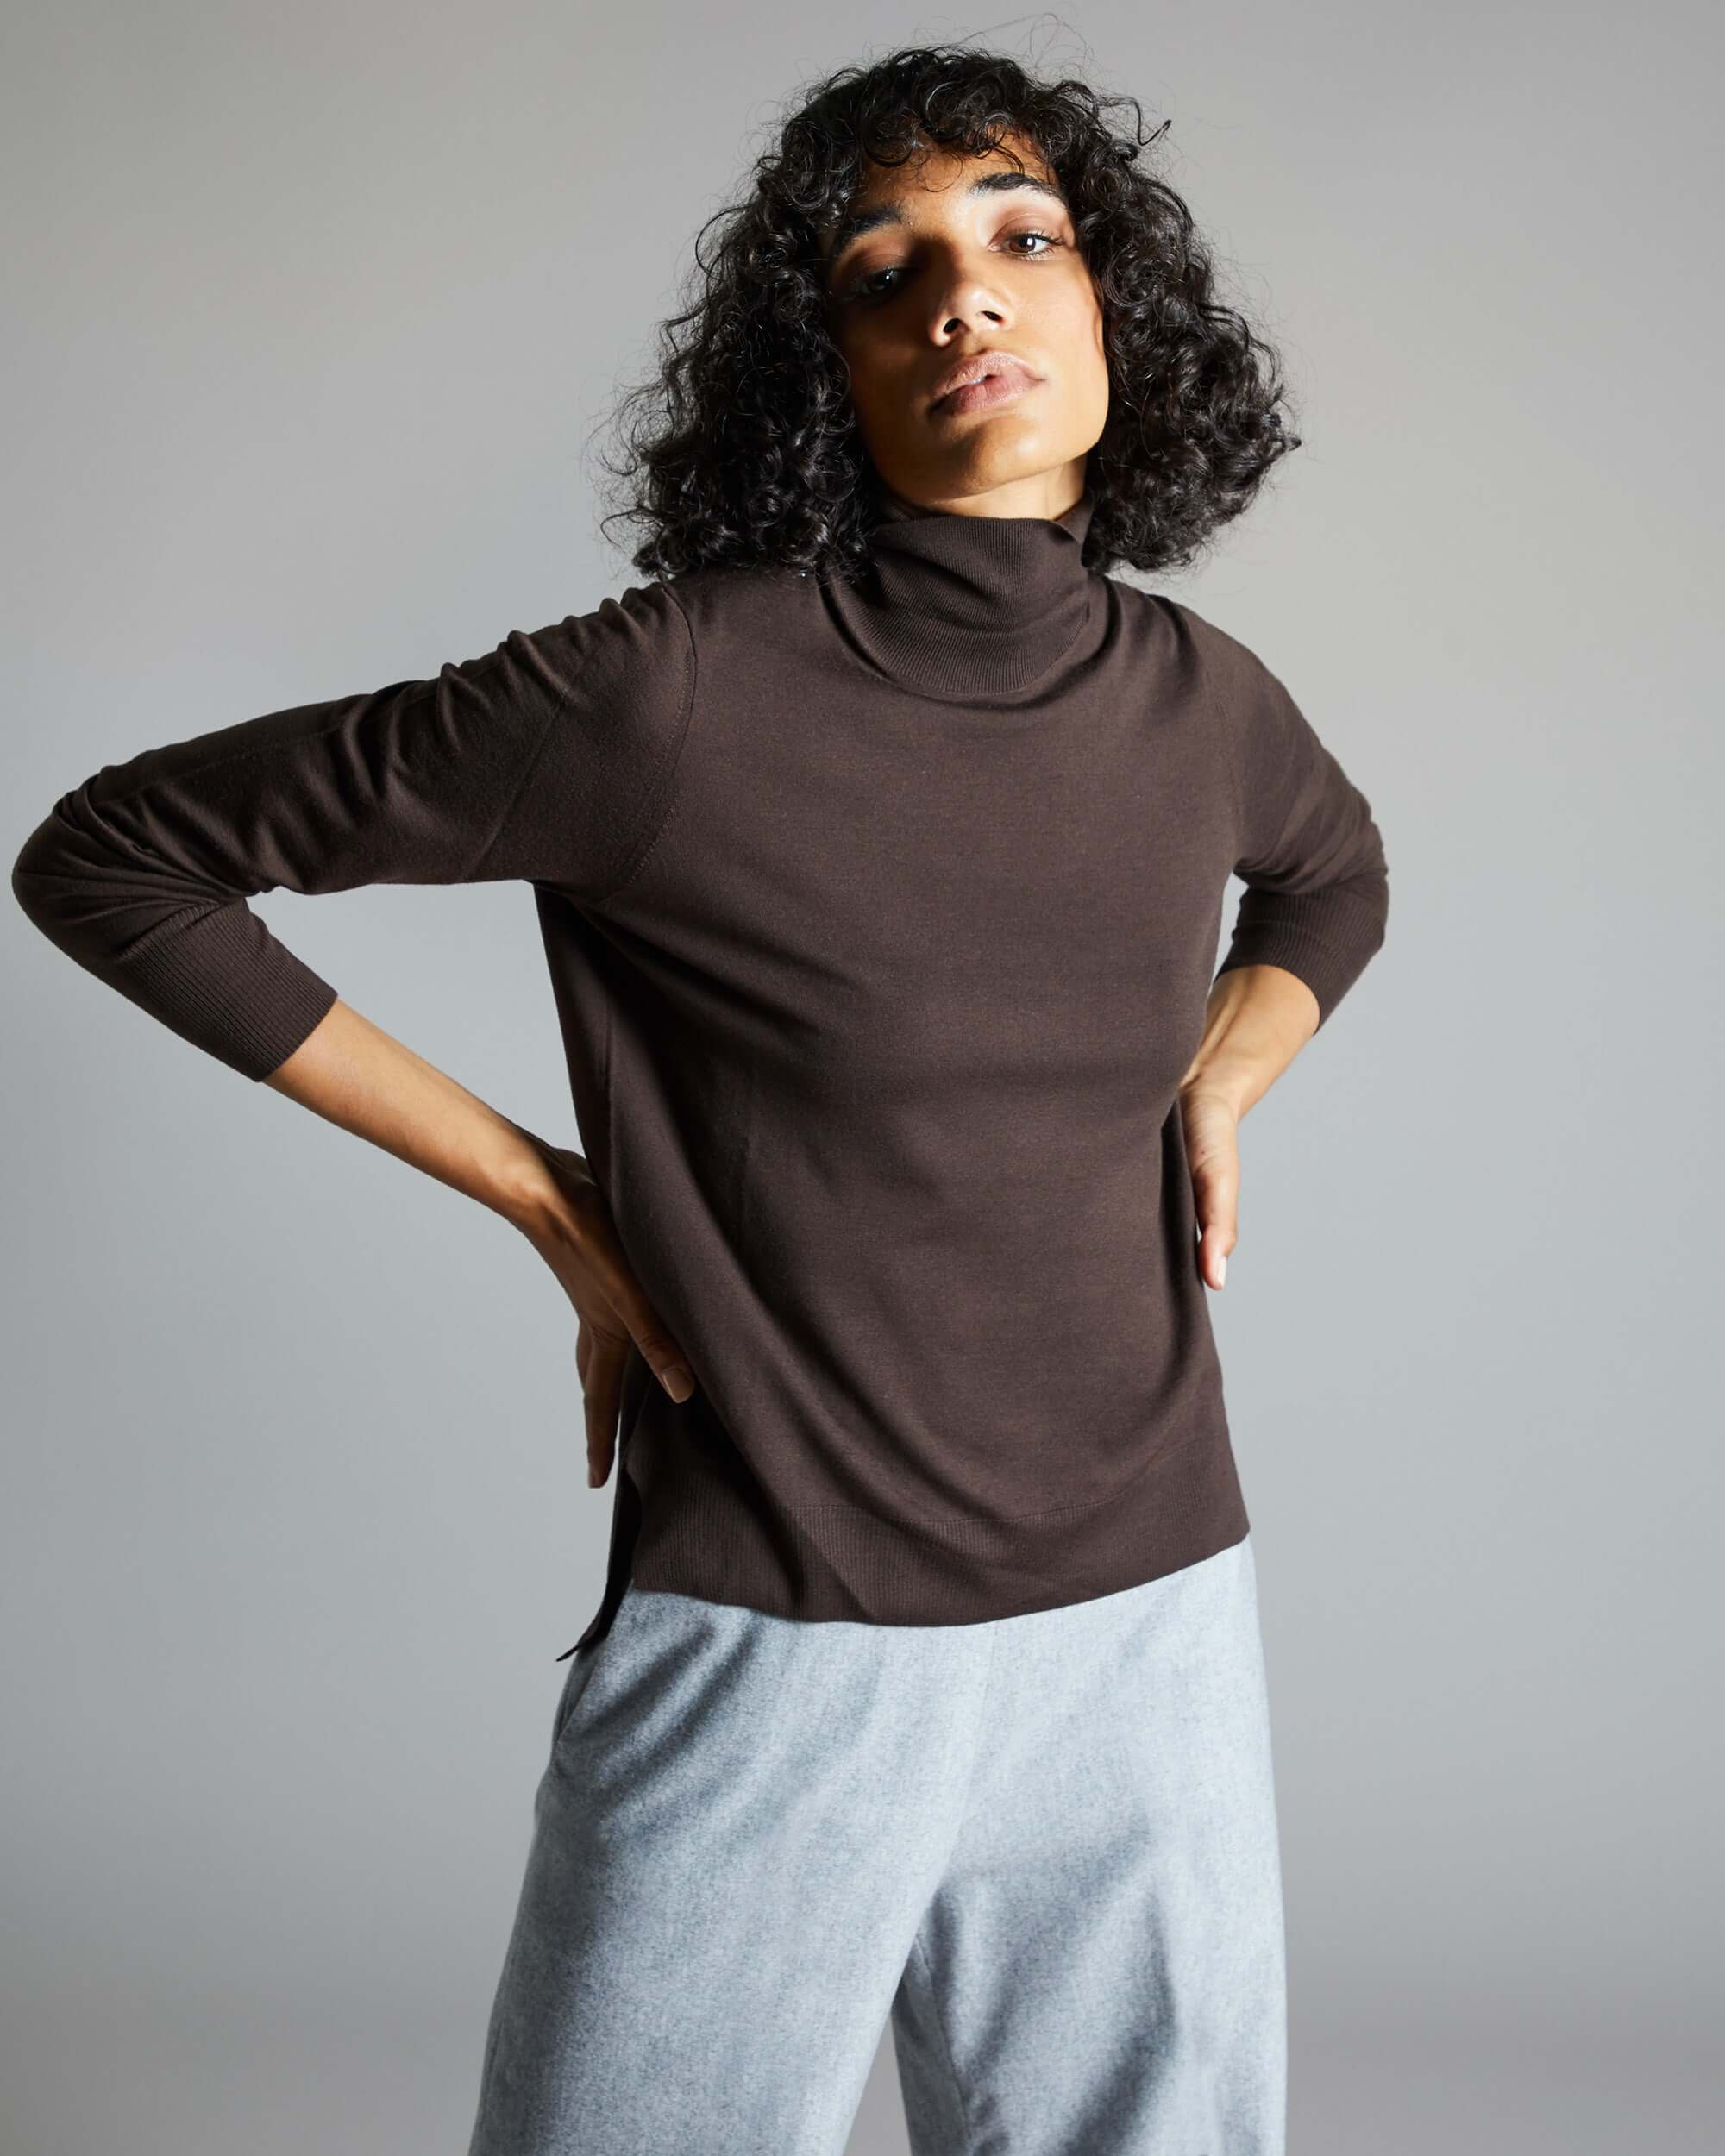 Womens Dark brown kidwool turtleneck